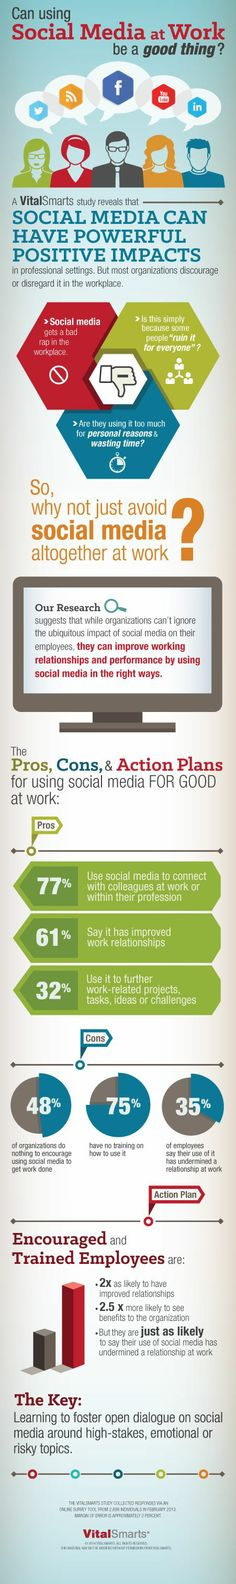 Can Using #SocialMedia At Work Be A Good Thing - #infographic